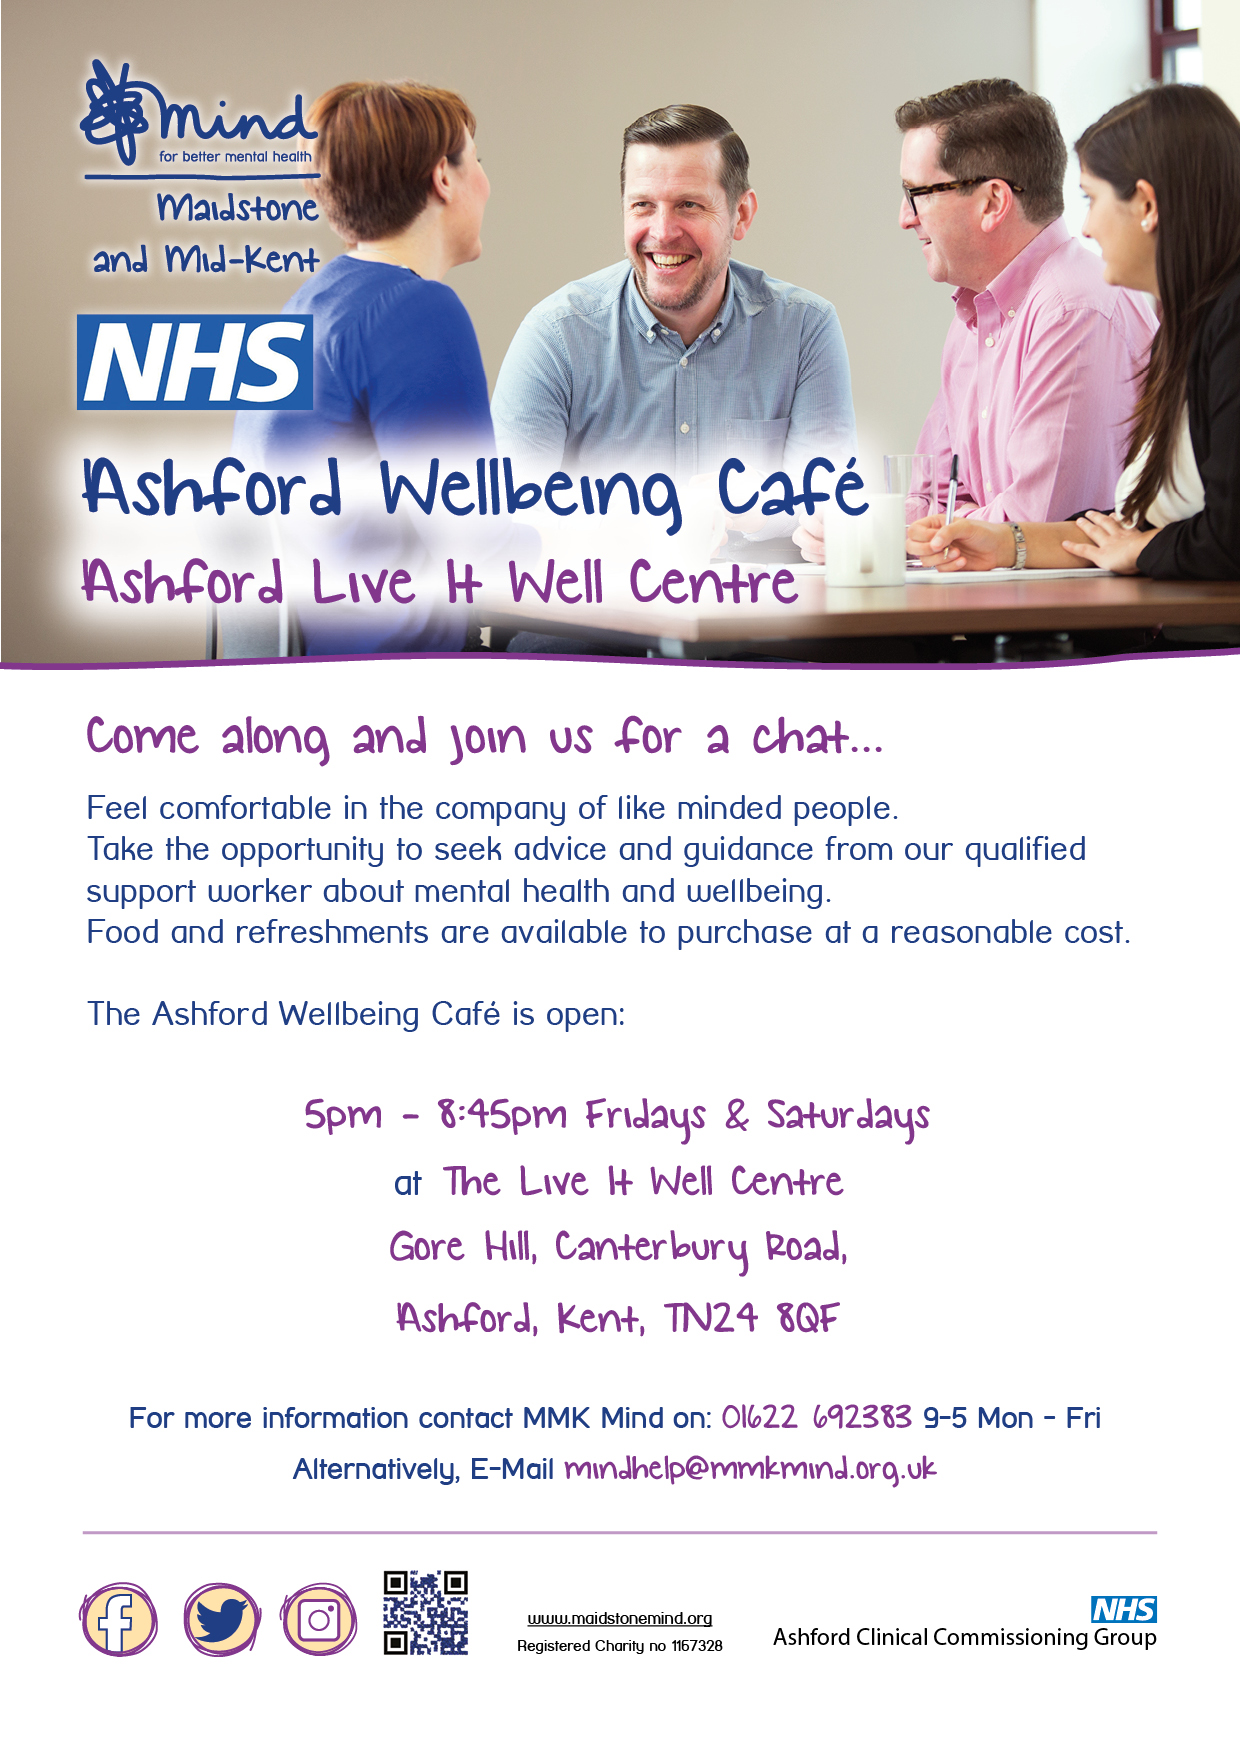 Ashford Wellbeing Café Ashford Live It Well Centre. Come along and join us for a chat... Feel comfortable in the company of like minded people. Take the opportunity to seek advice and guidance from our qualified support worker about mental health and wellbeing. Food and refreshments are available to purchase at a reasonable cost. The Ashford Wellbeing Café is open: 5pm - 8:45pm Fridays & Saturdays. at The Live It Well Centre Gore Hill, Canterbury Road, Ashford, Kent, TN24 8QF. For more information contact MMK Mind on: 01622 692383 9-5 Mon - Fri Alternatively, E-Mail mindhelp@mmkmind.org.uk.